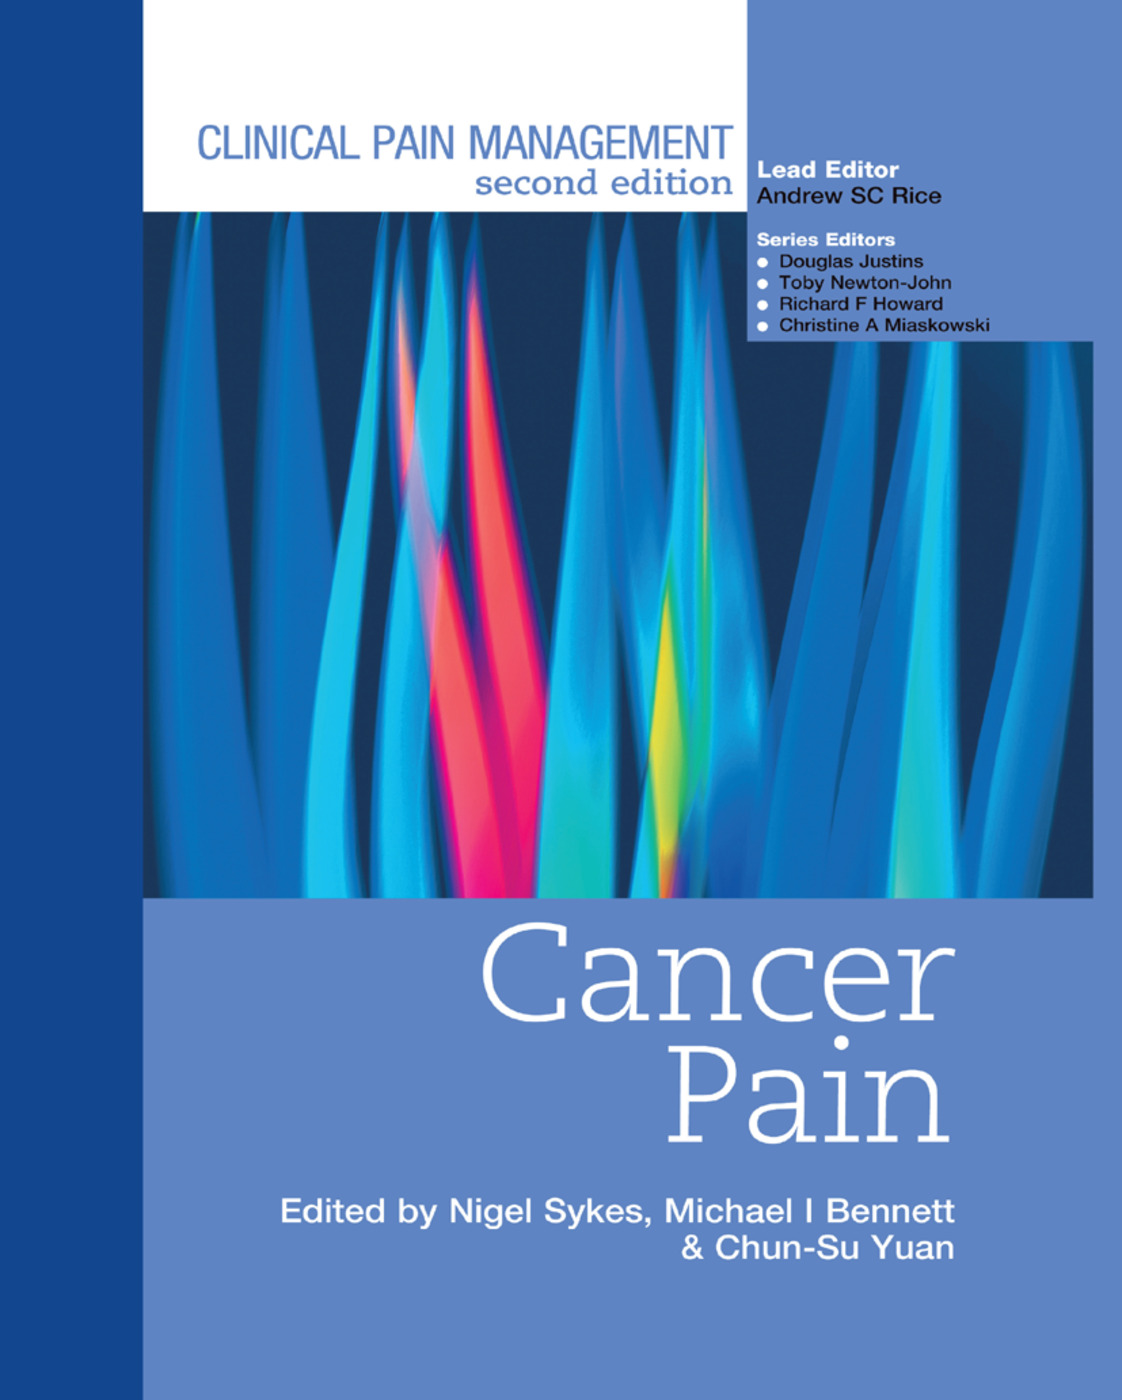 Clinical Pain Management : Cancer Pain: 2nd Edition (Paperback) book cover